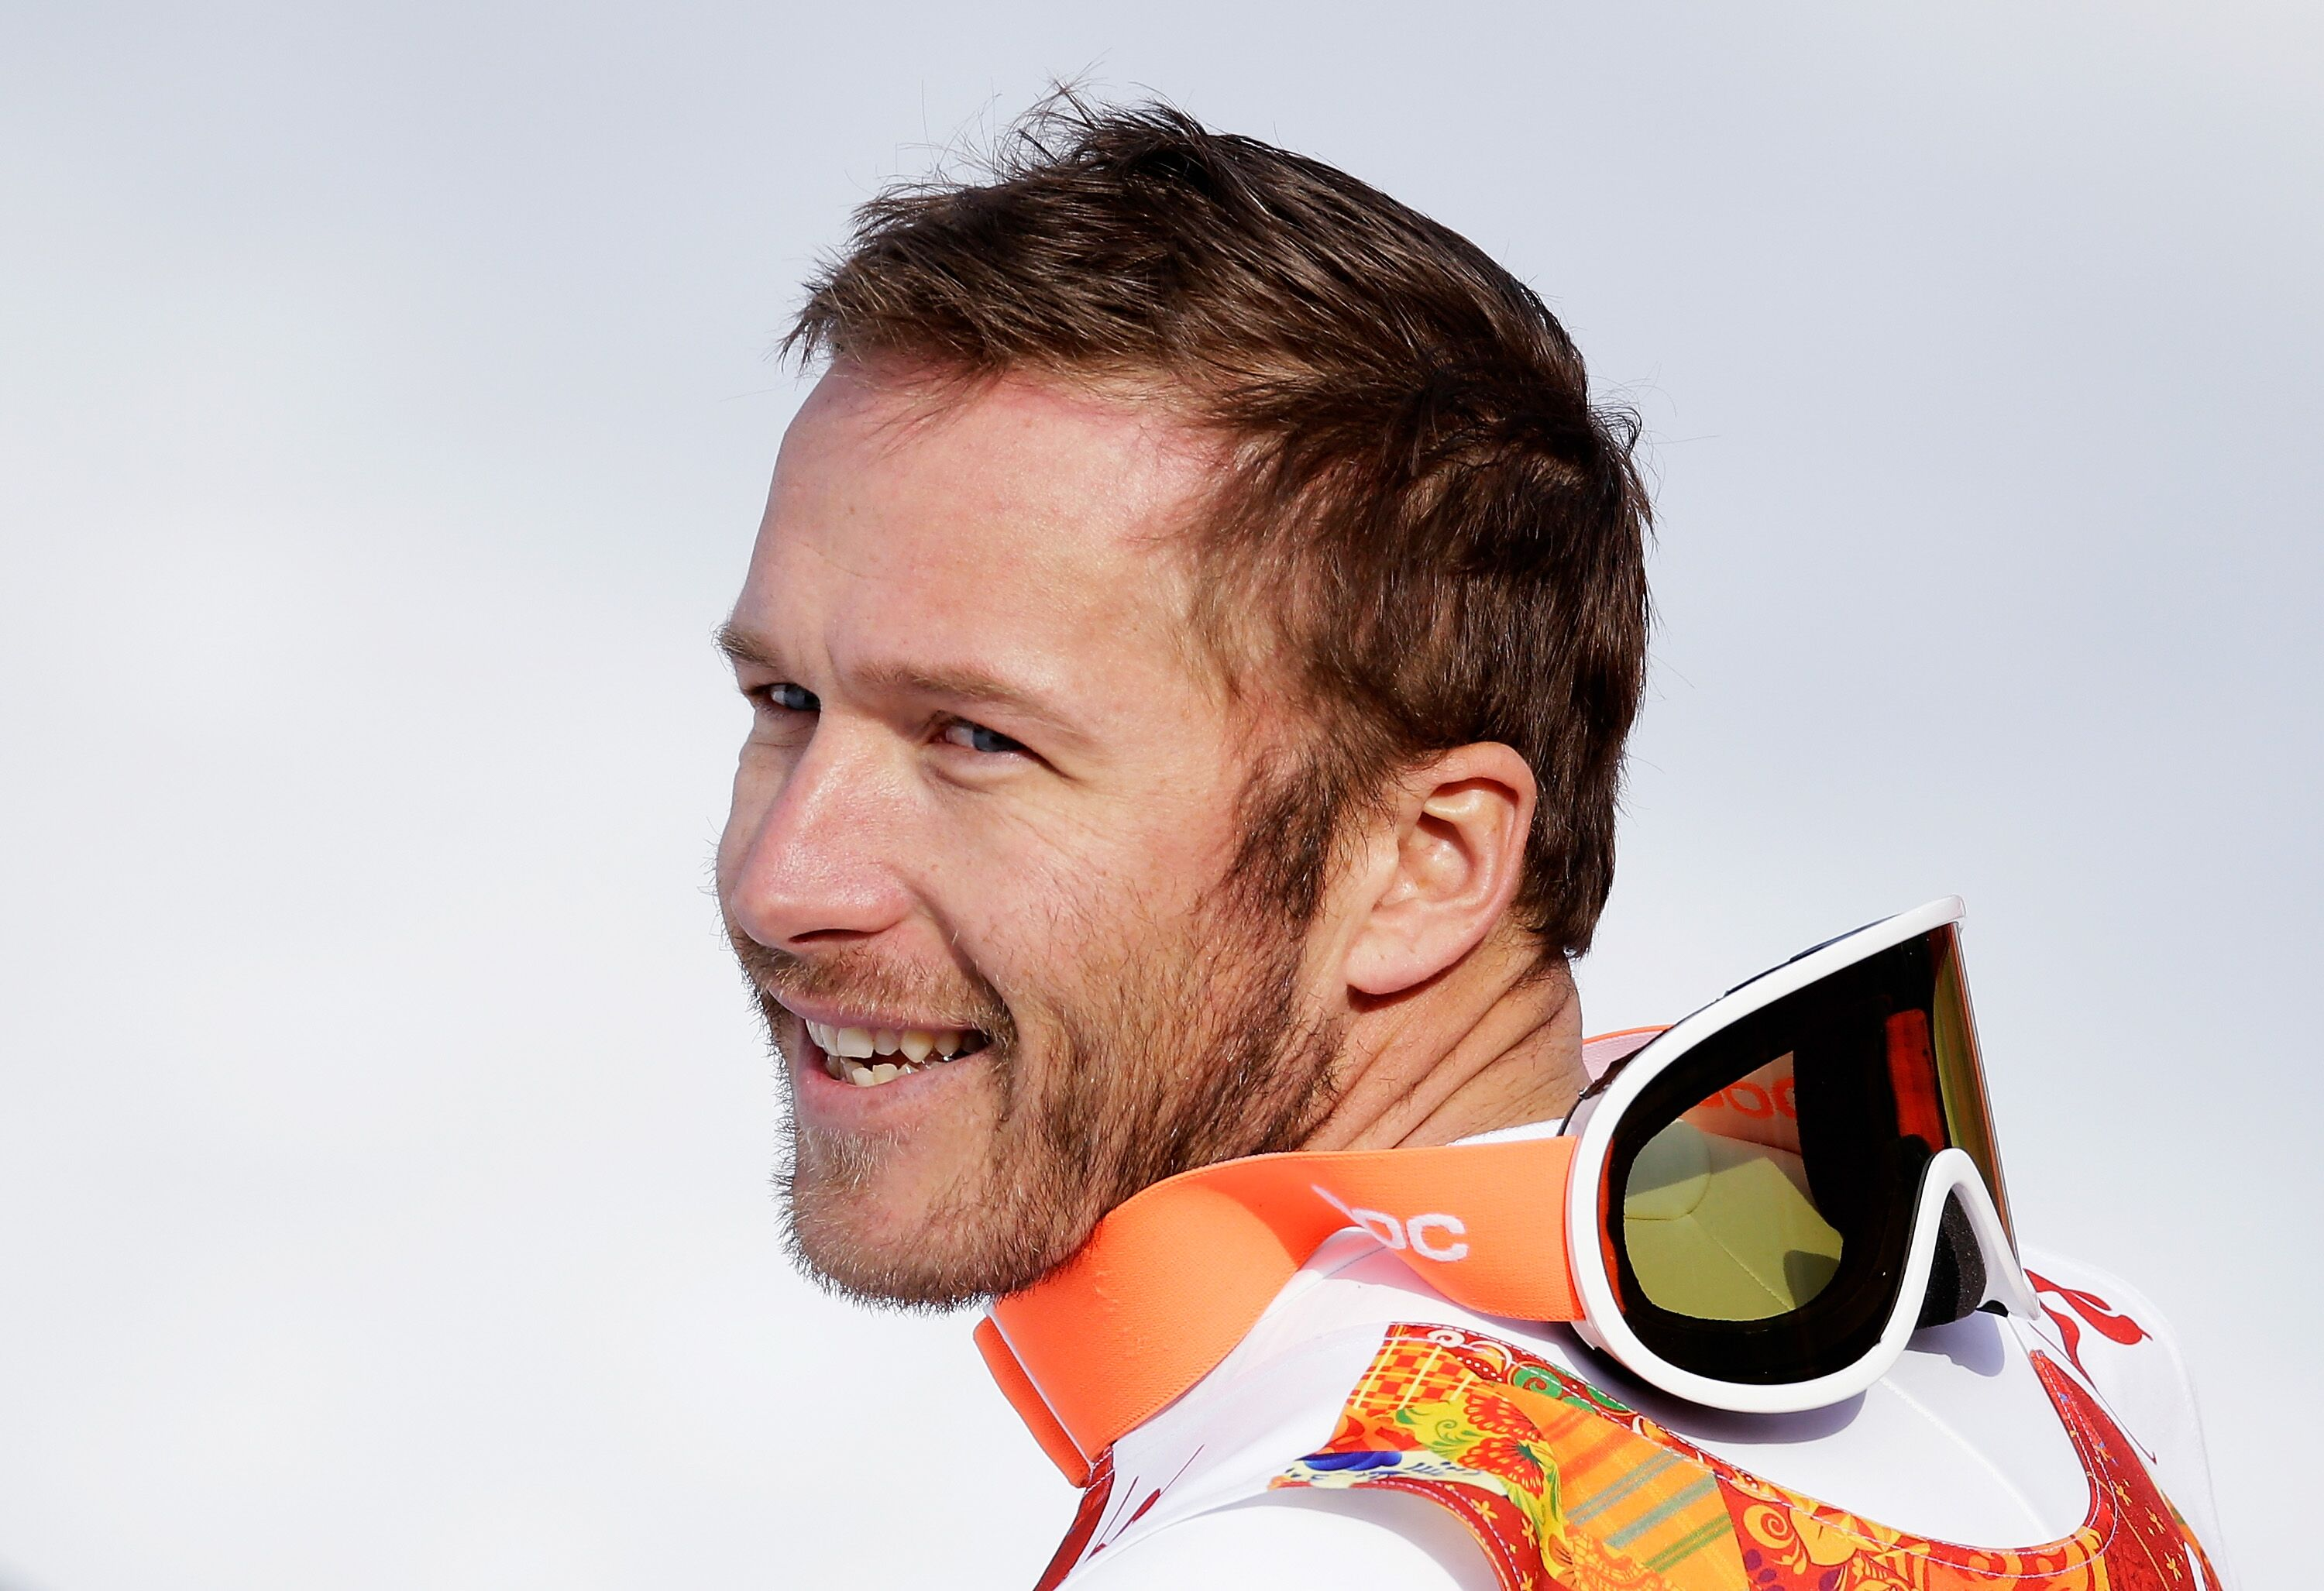 Bode Miller at the Sochi Winter Olympics. | Source: Getty Images